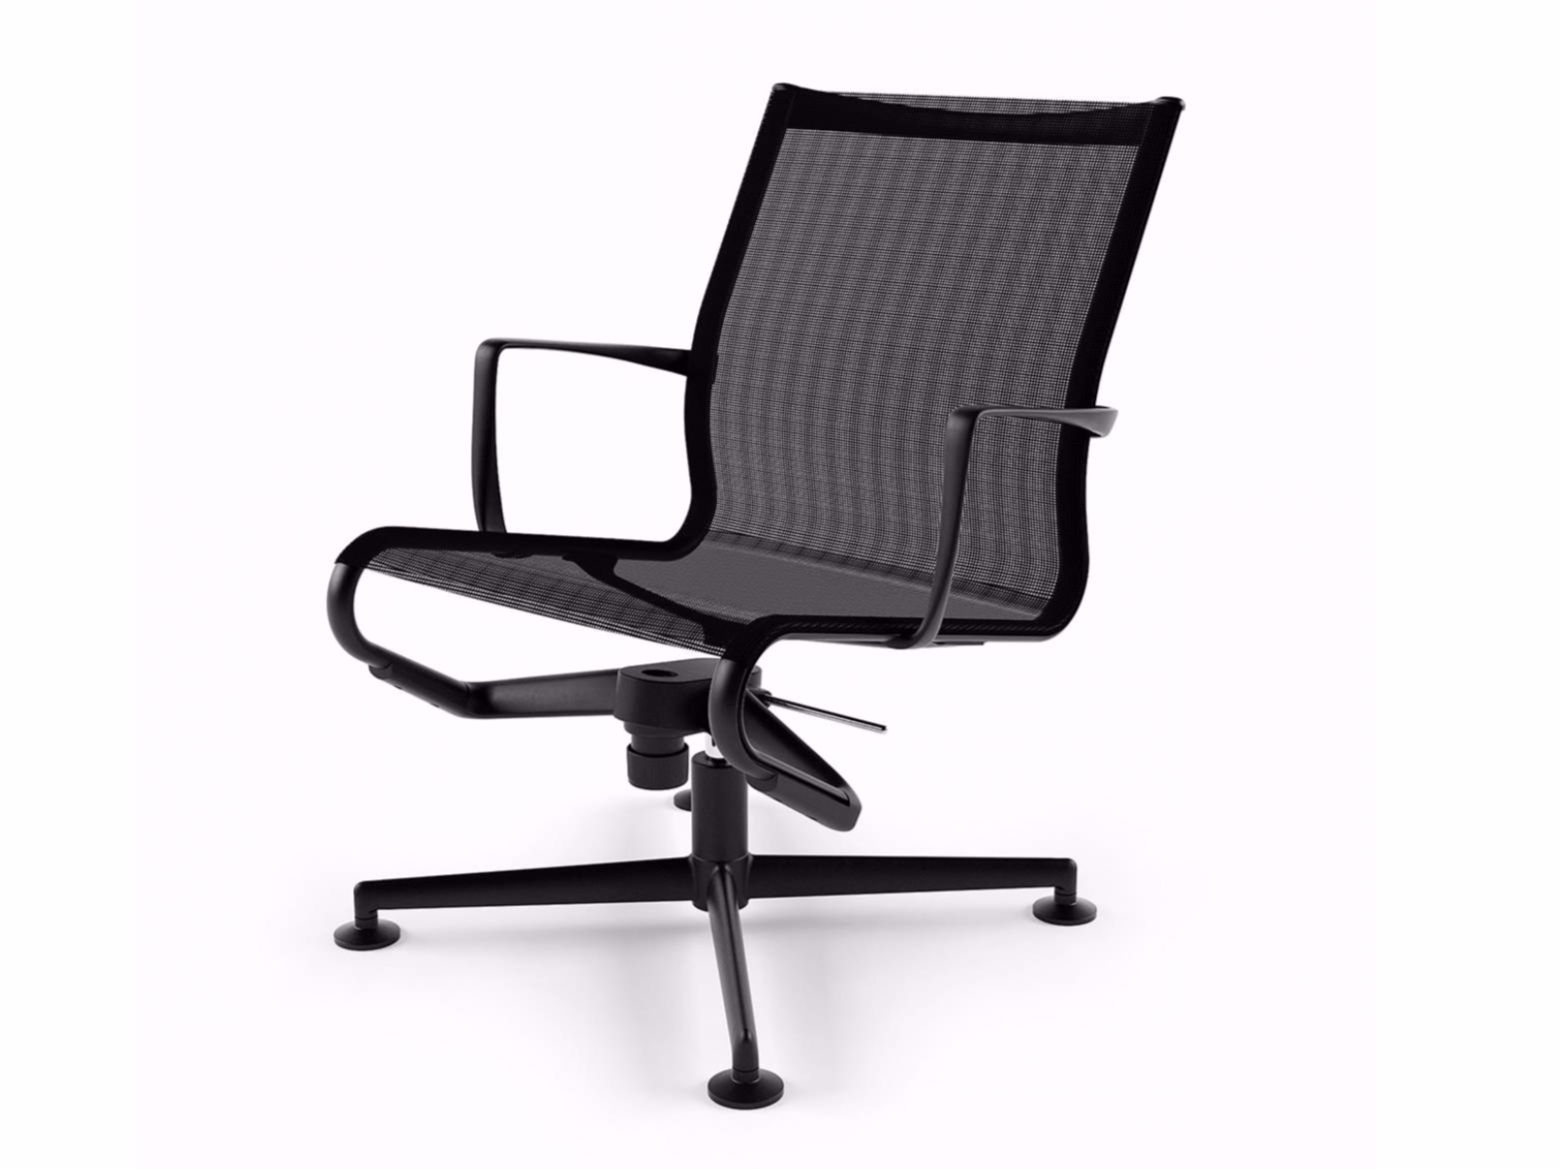 2014 at 768 215 768 in elegant collection of cushioned rocking chairs - Explore Office Chairs Rocking Chair And More